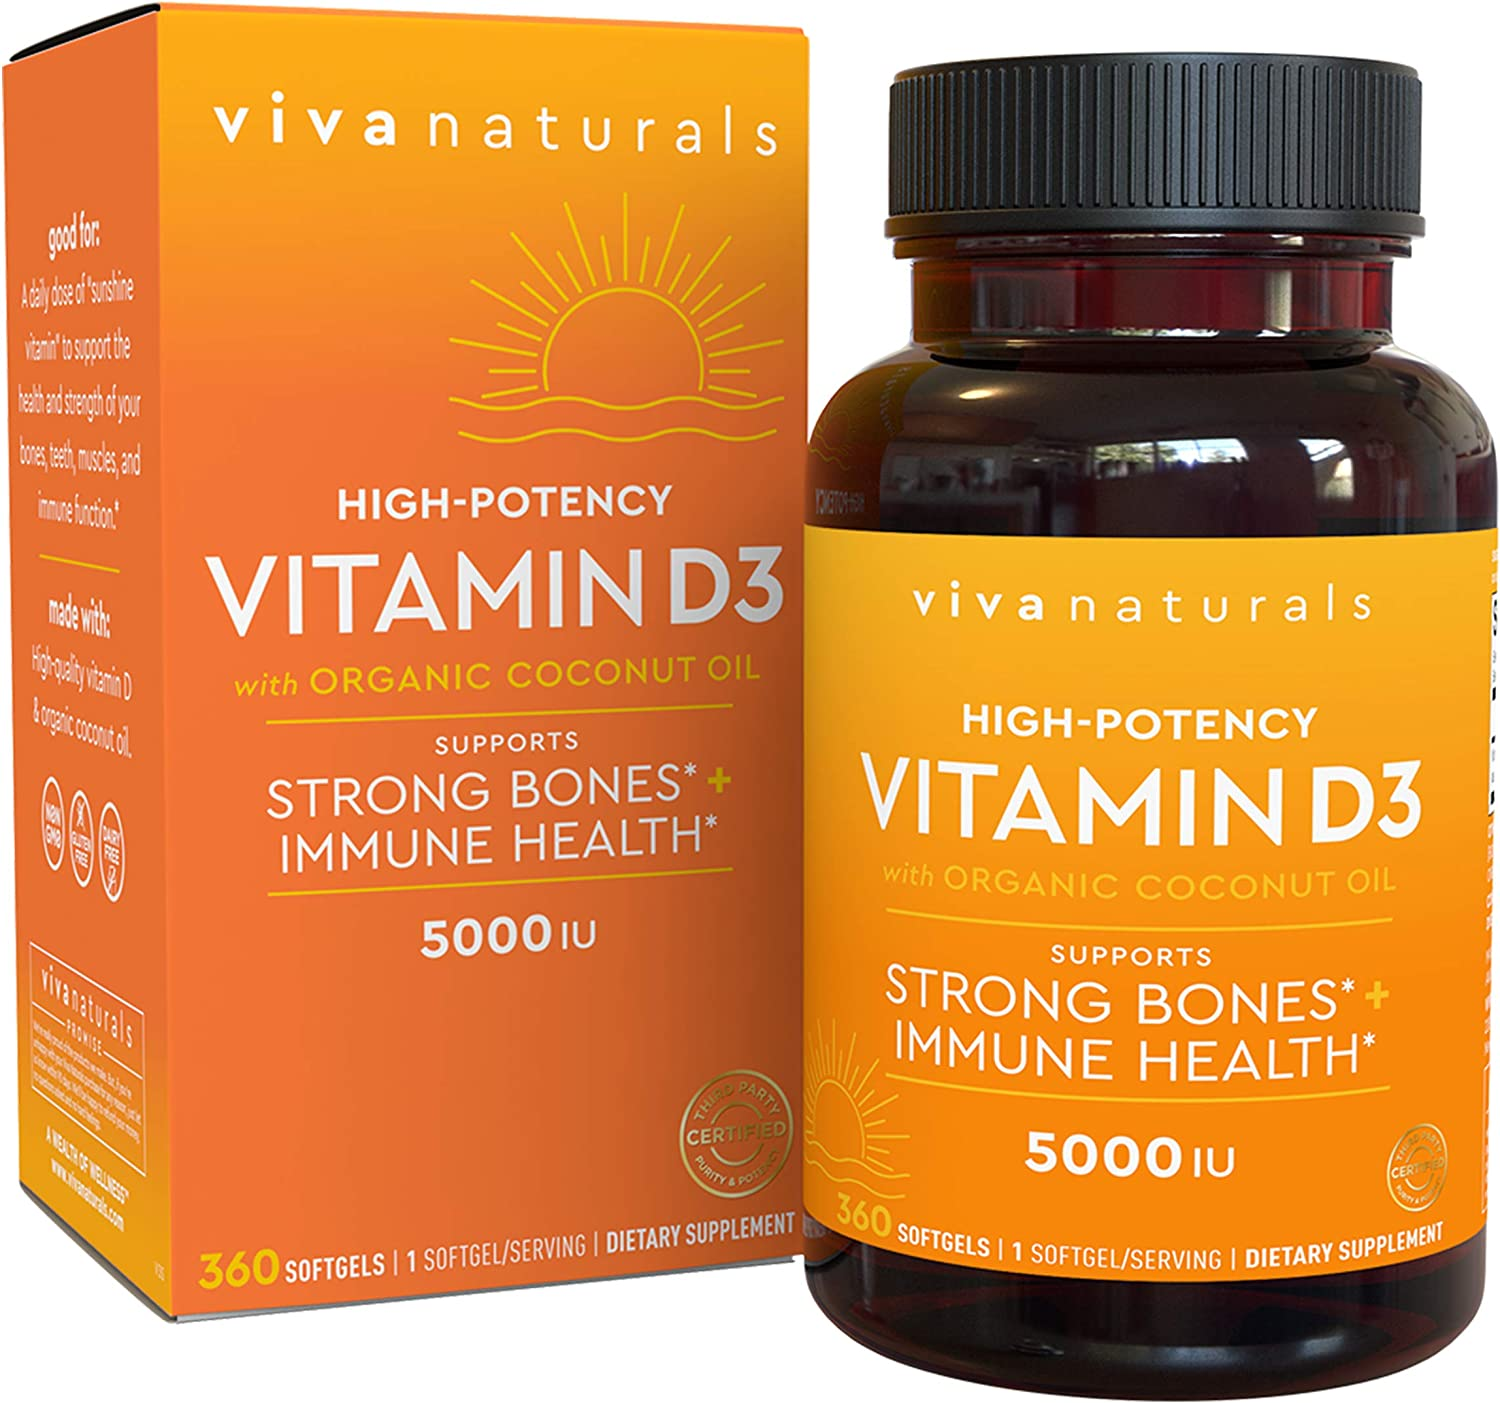 Vitamin D3 5000 IU, 360 Softgels - High Potency Vitamin D Made with Organic Coconut Oil, Vitamin D for Healthy Immune Function, Bone Health & Muscles Function